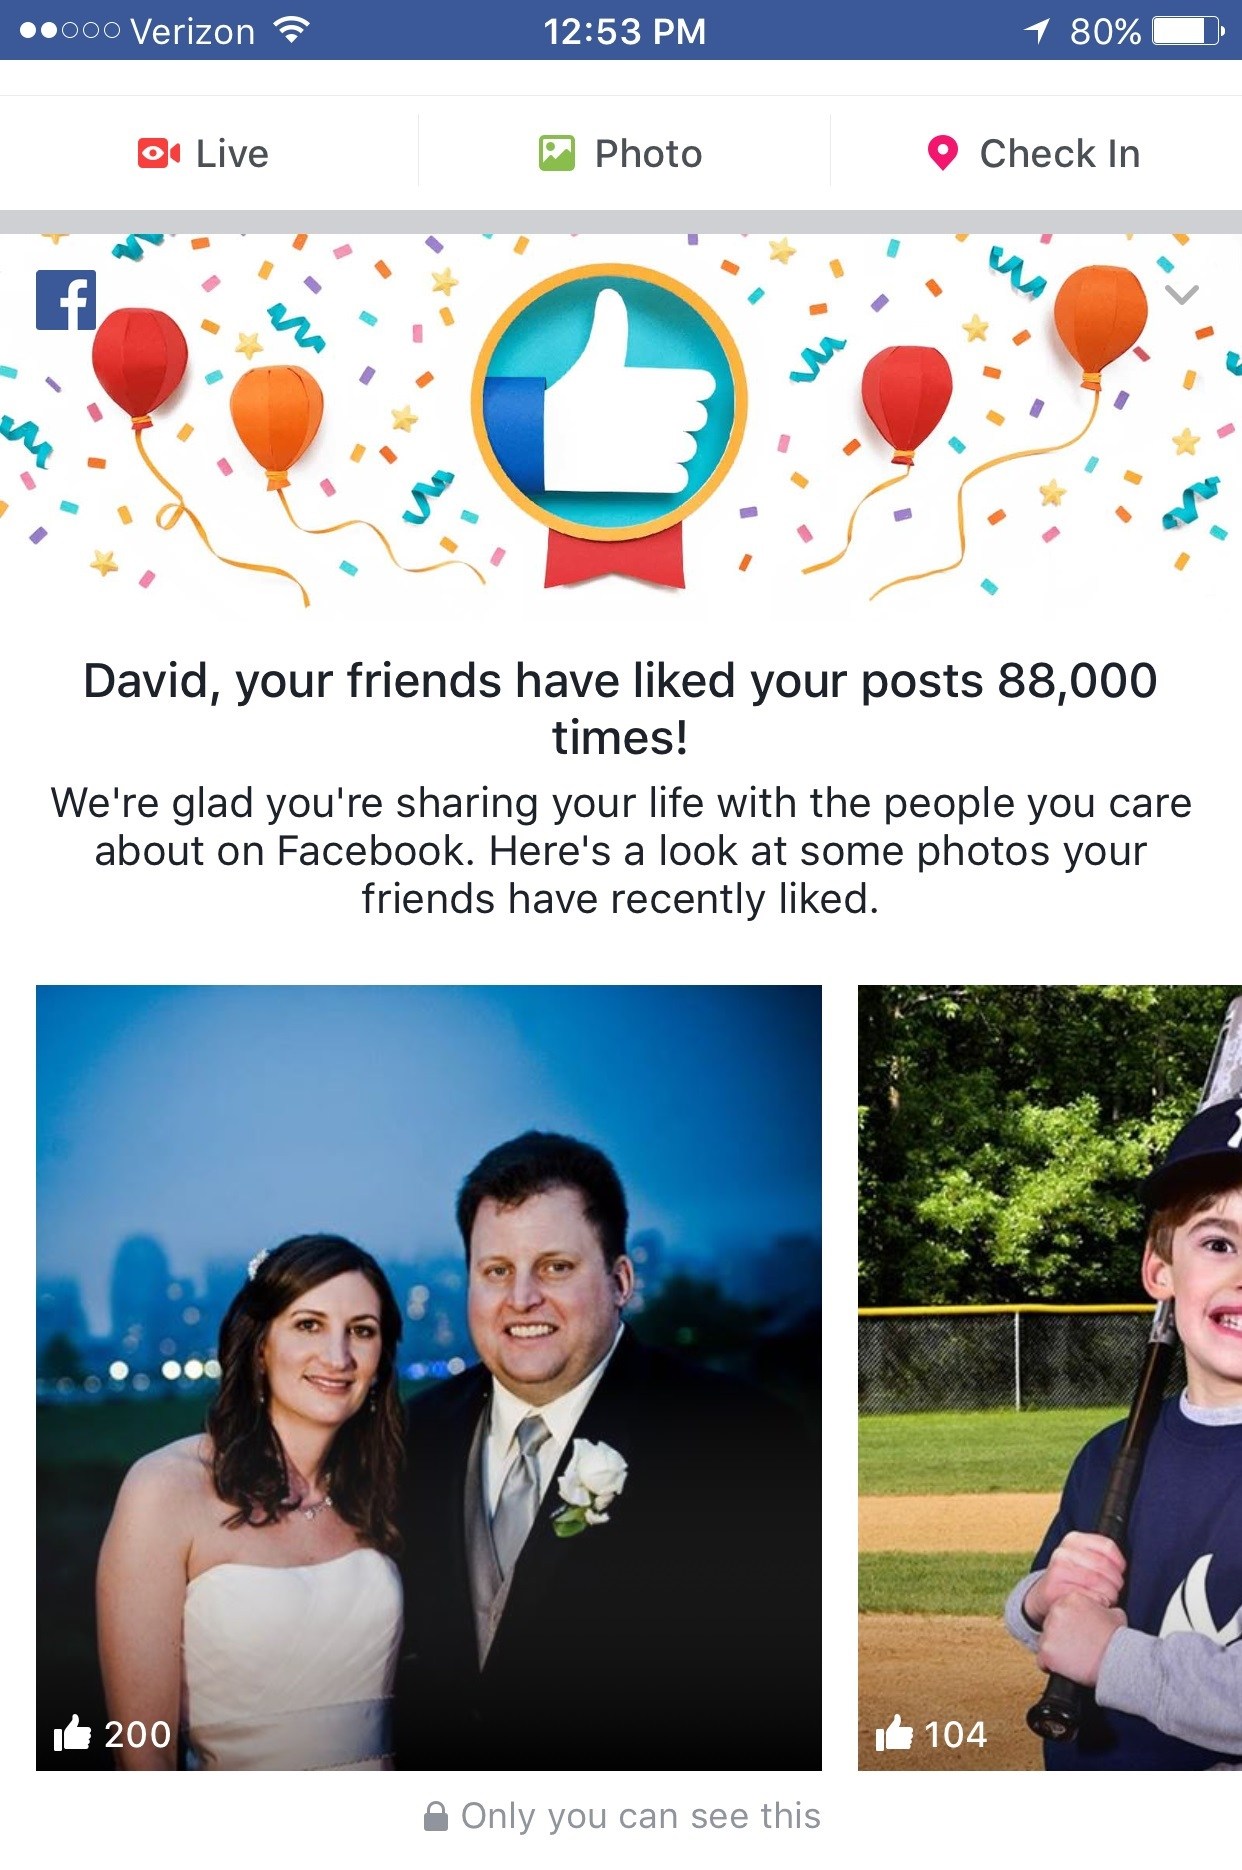 how many times have your friends liked your facebook posts adweek